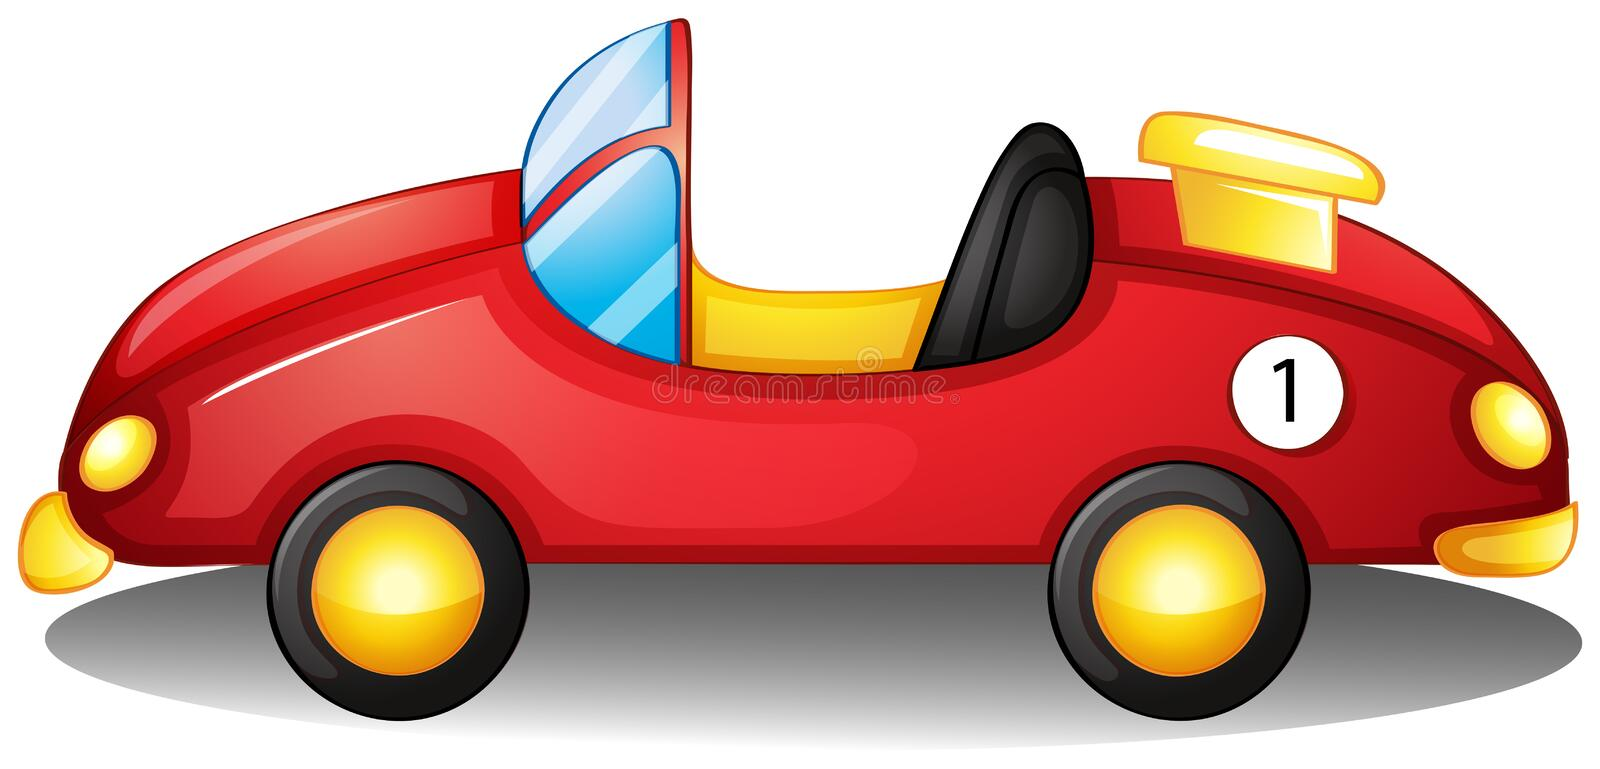 A red toy car. Illustration of a red toy car on a white background vector illustration